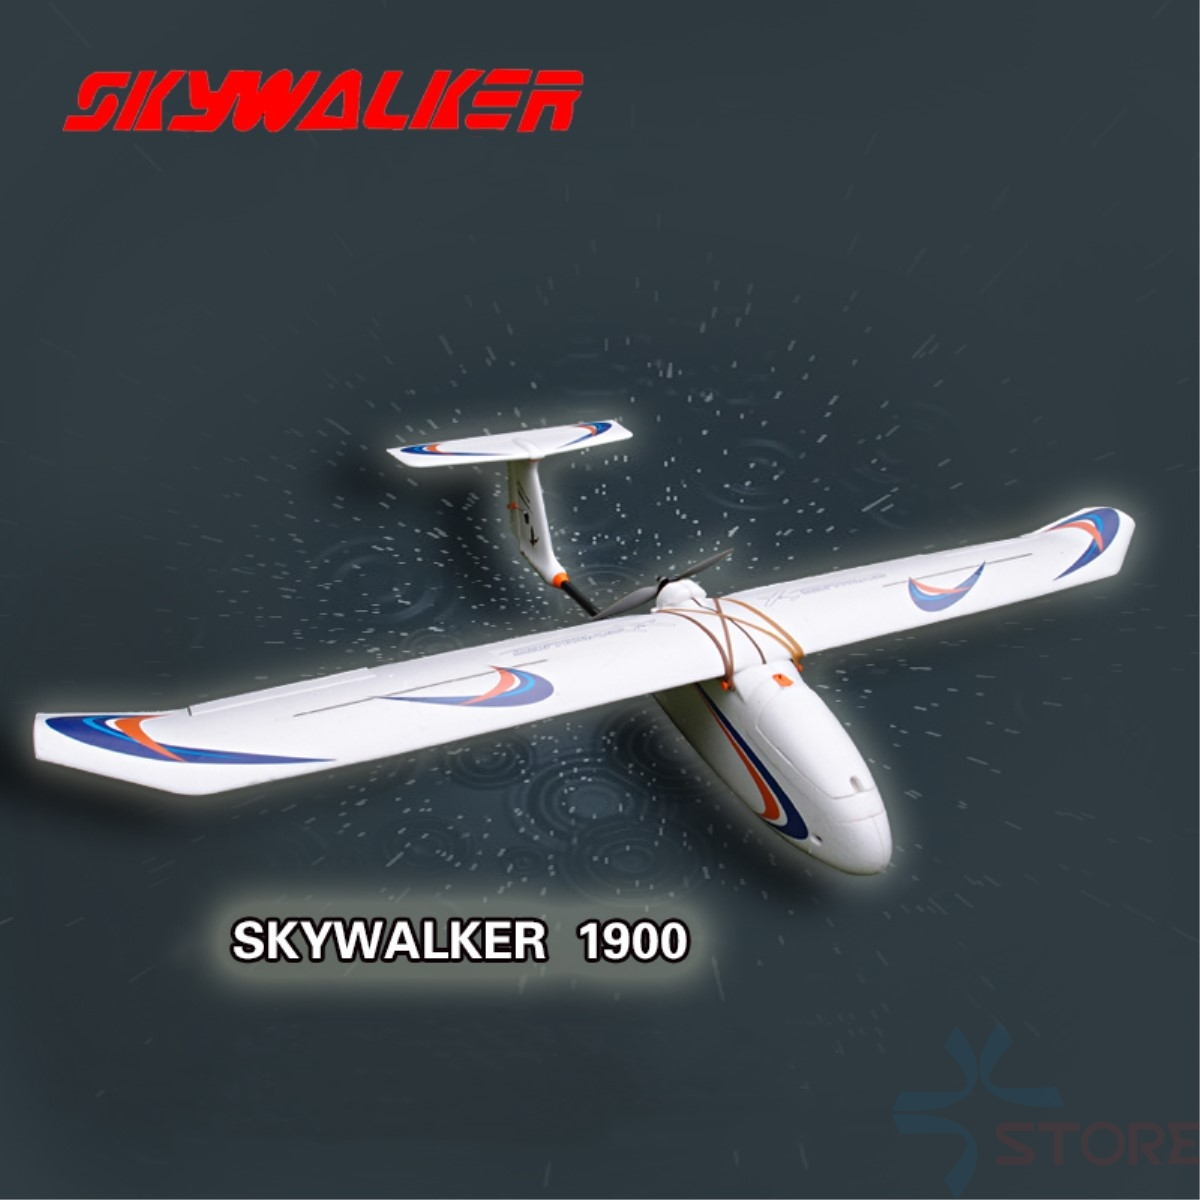 Skywalker avion 1900mm en fiber de carbone queue version Planeur blanc OEB FPV Avion RC Avion Kit